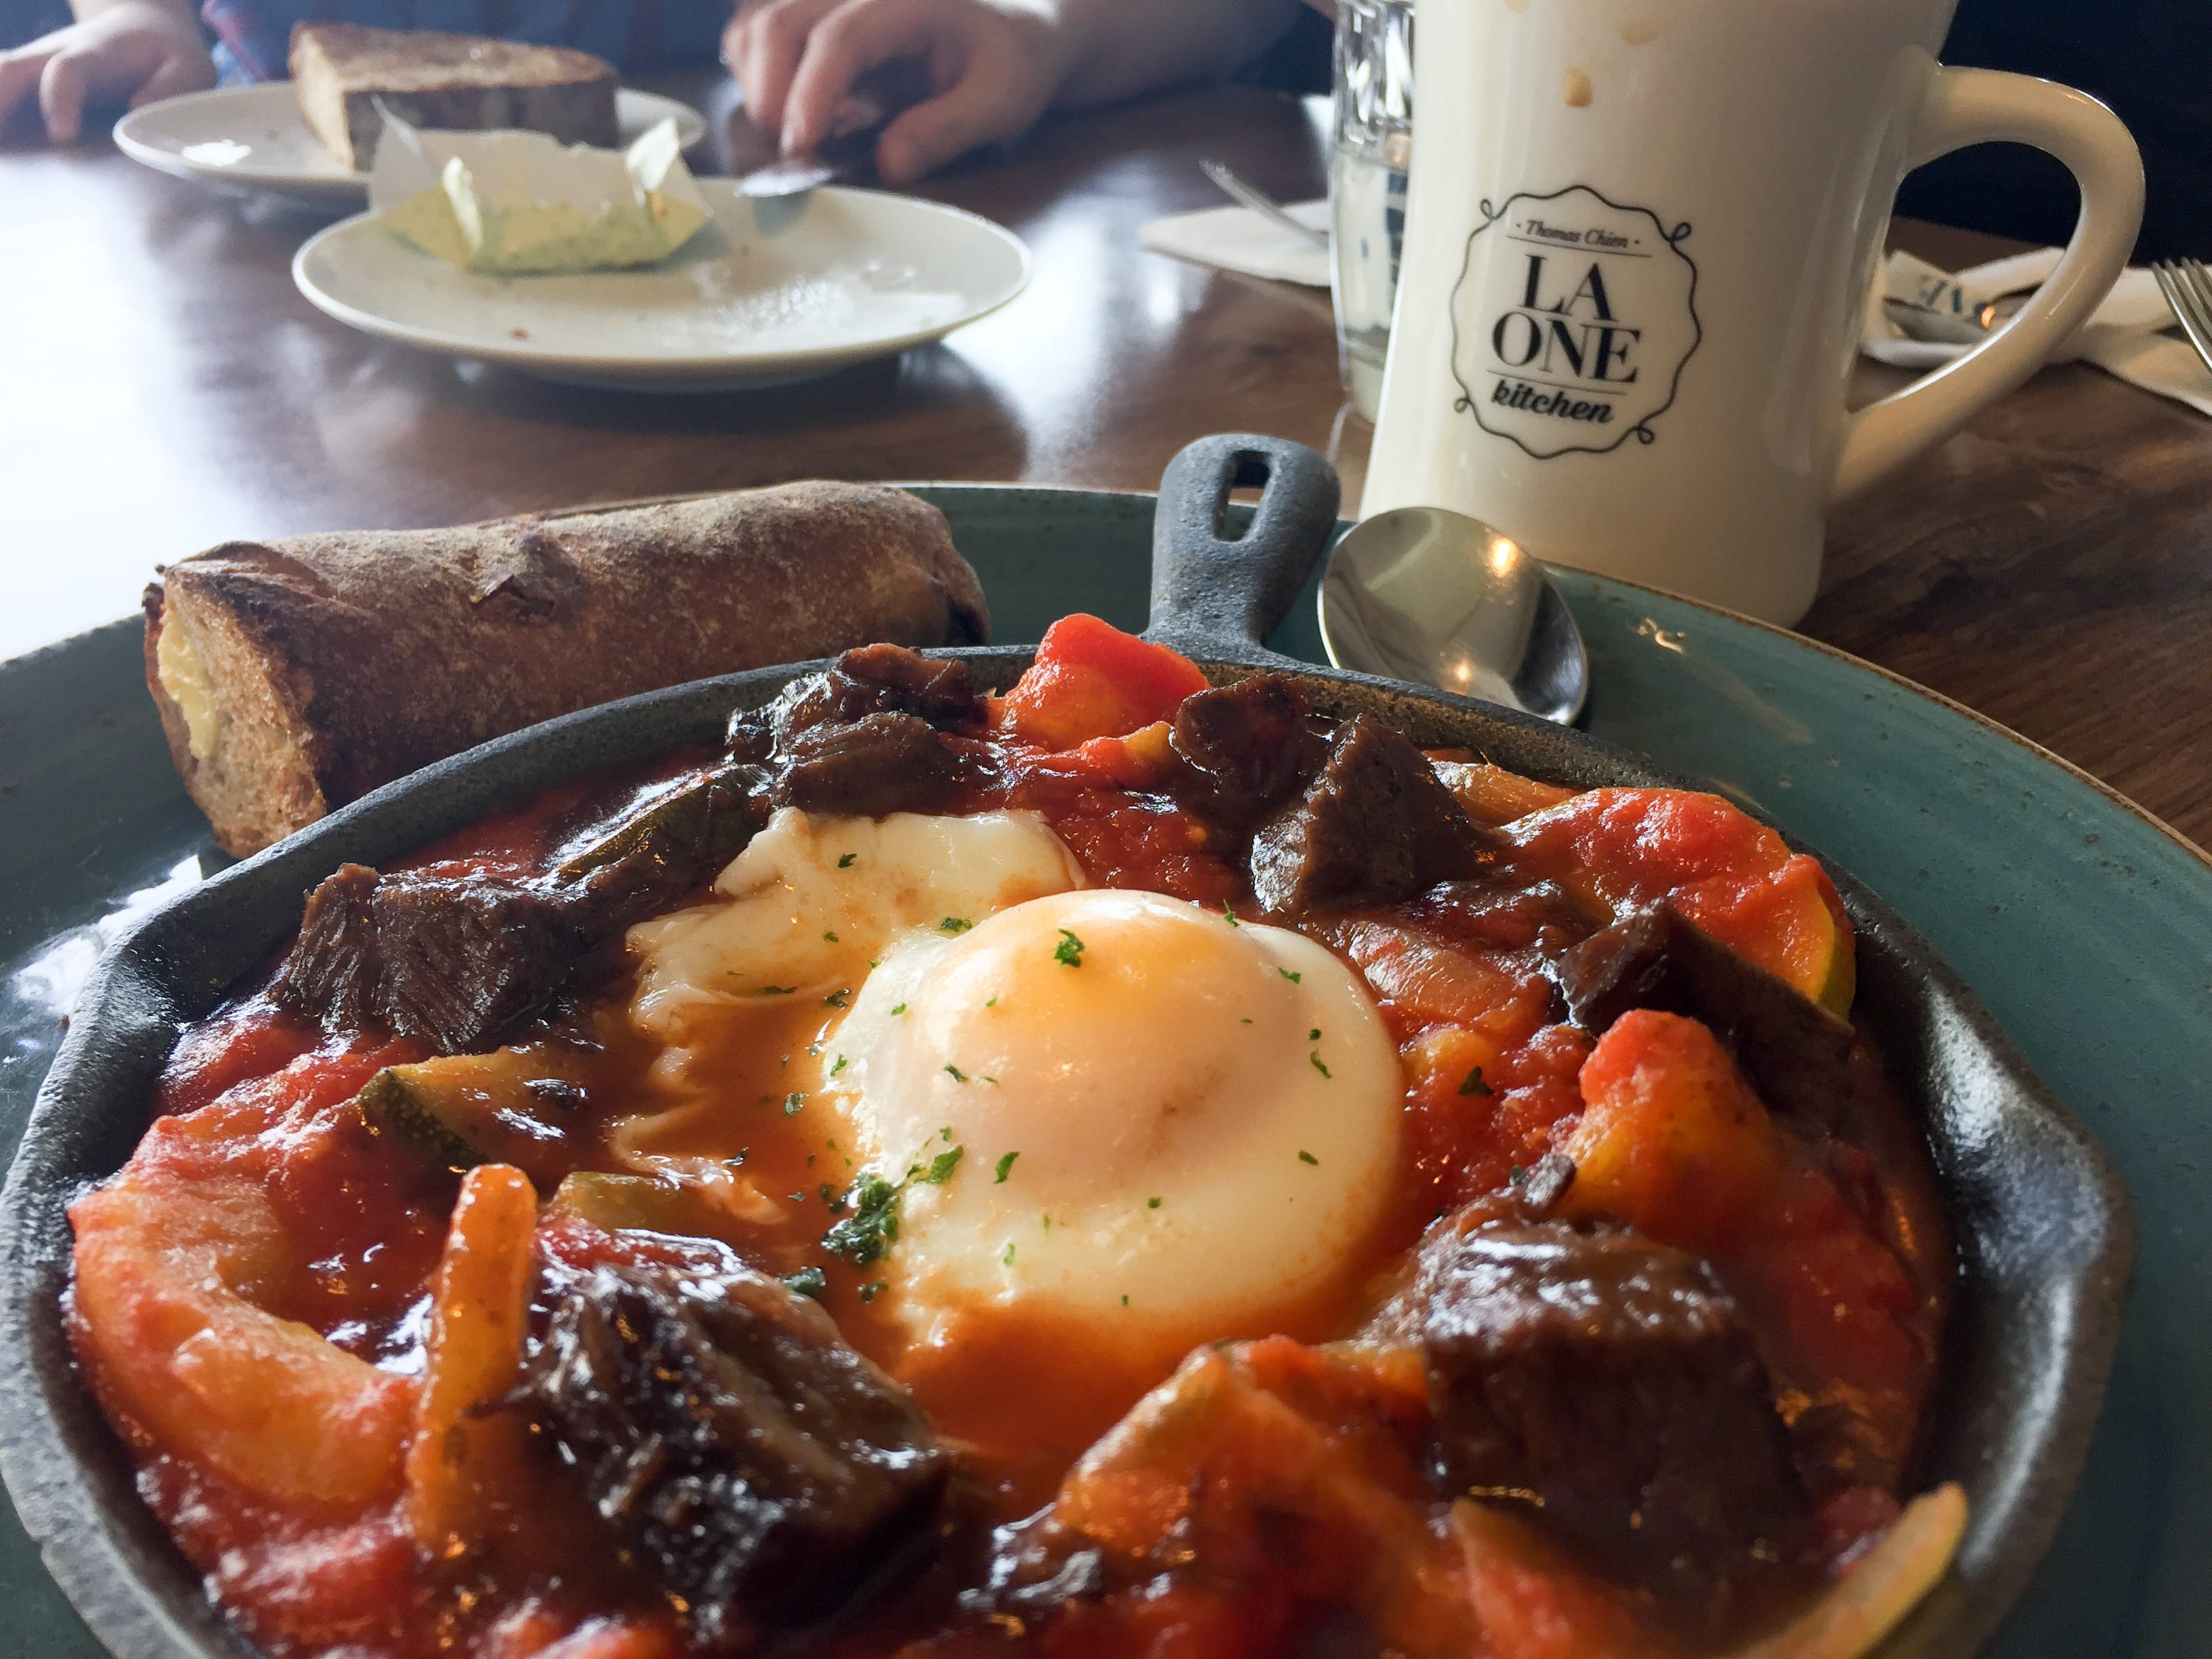 Braised Beef Cheeks with Egg, Vegetables and Bread